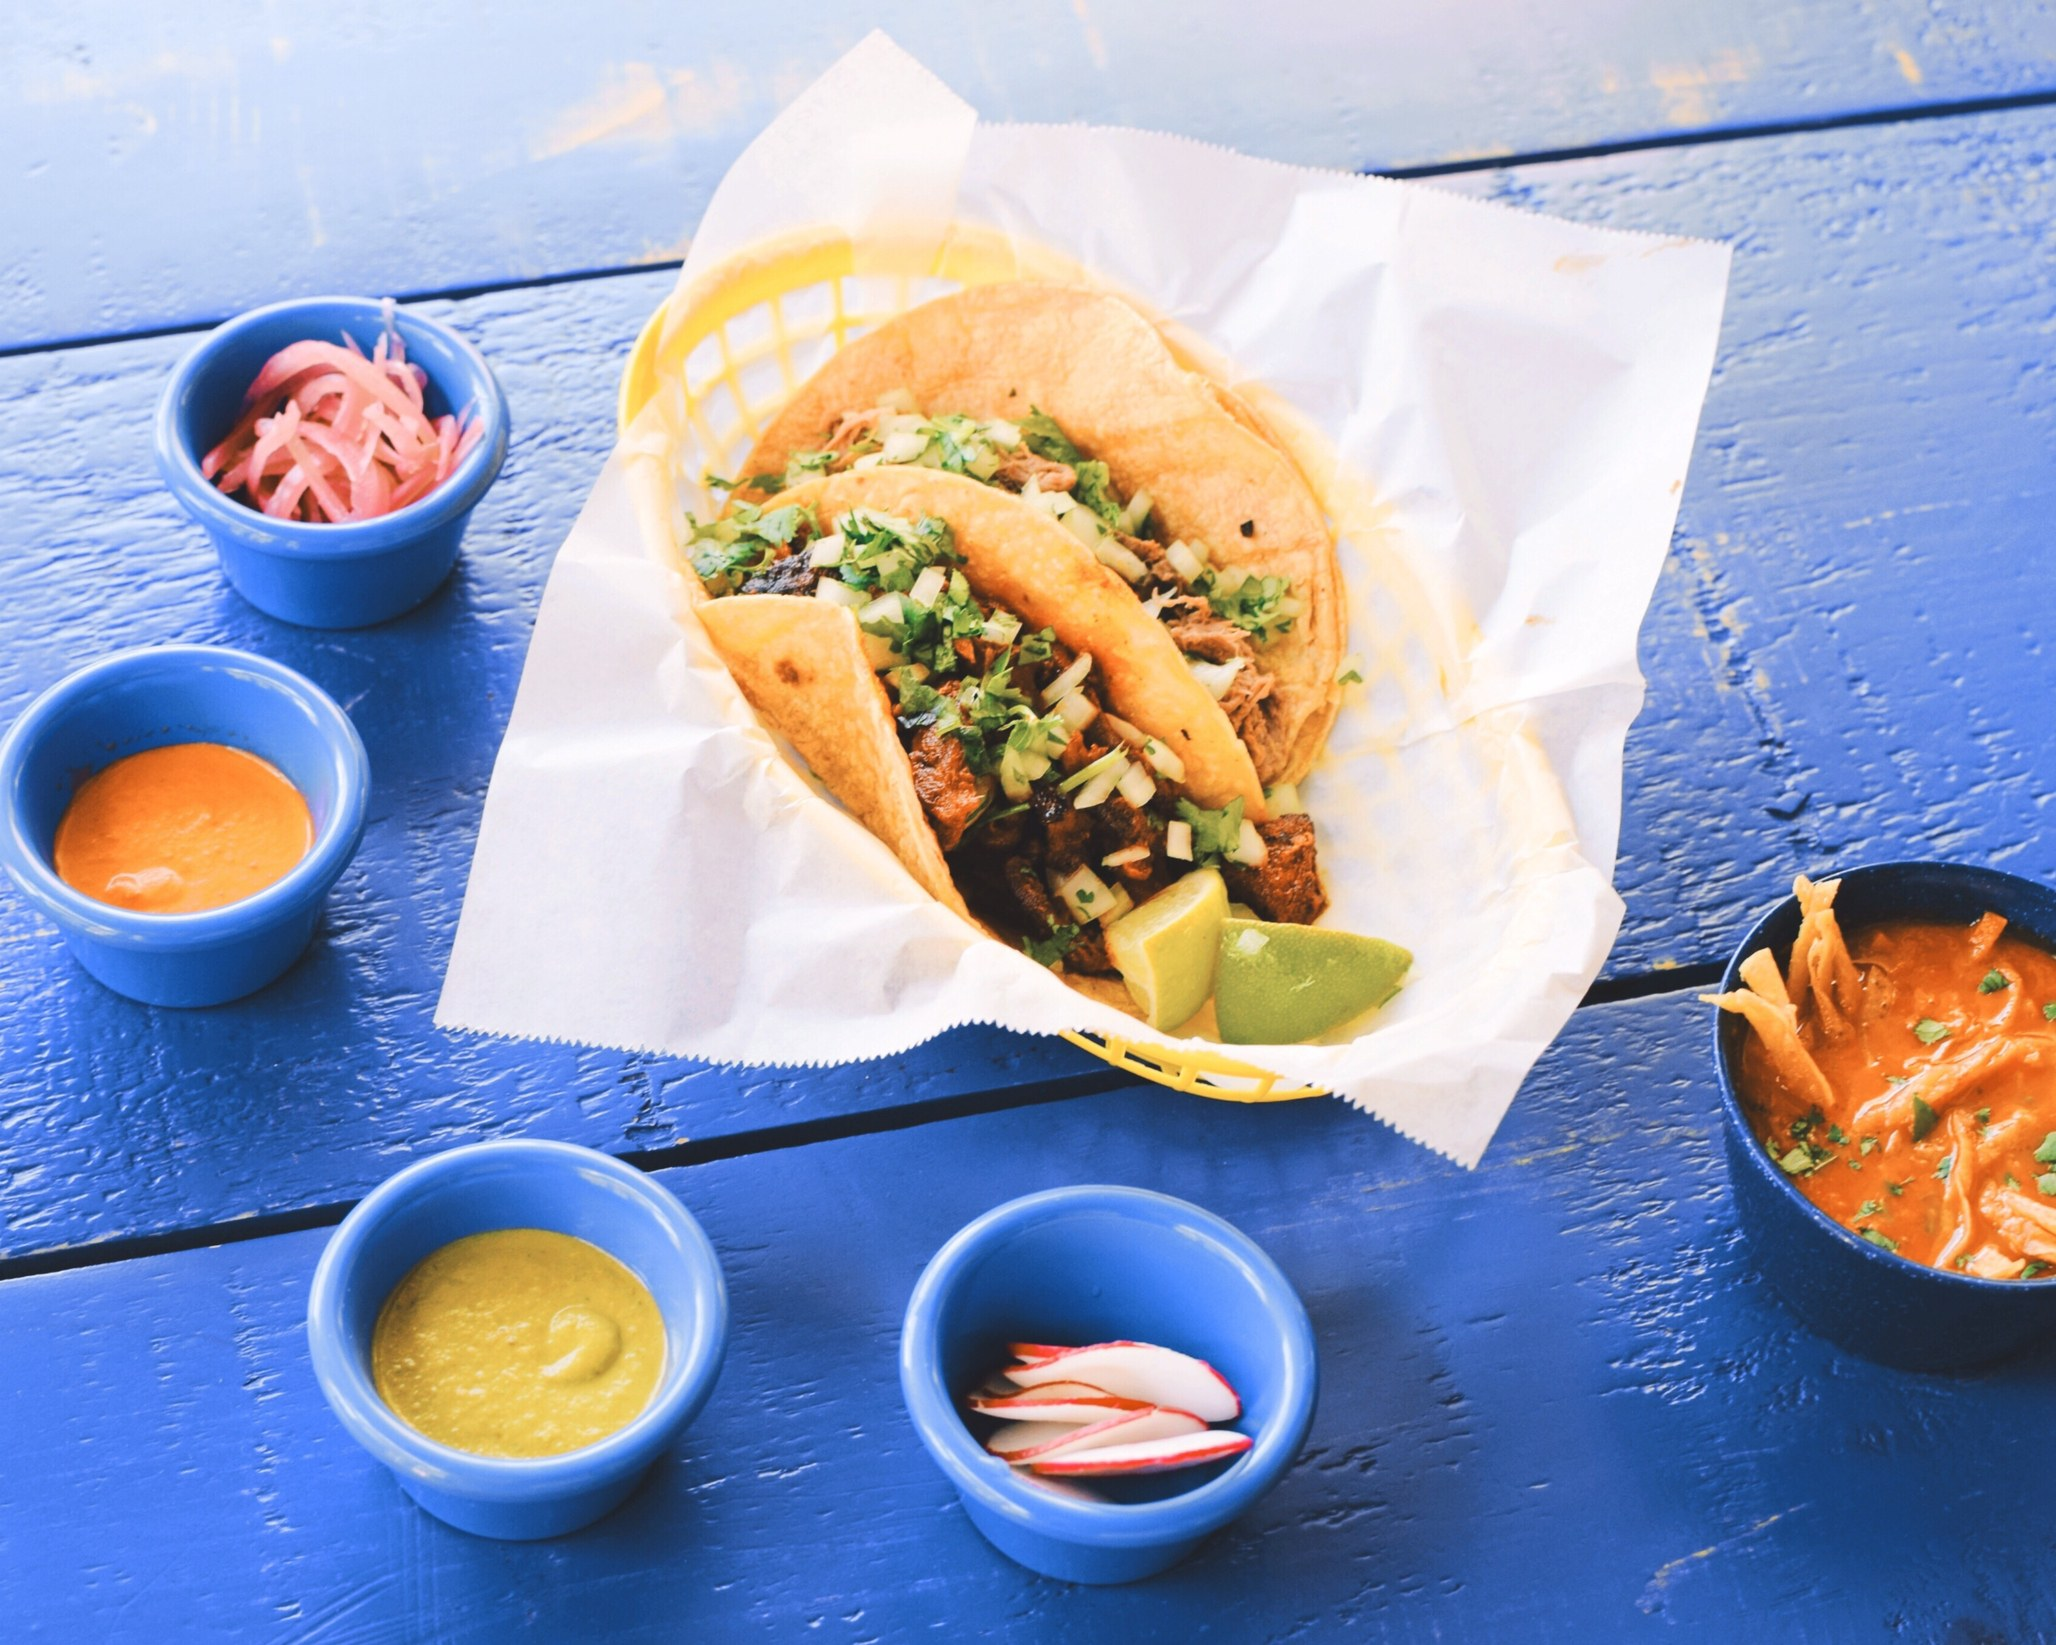 Embrace Los Angeles for the Hard-Shelled Taco Heaven It is   Bon Appétit